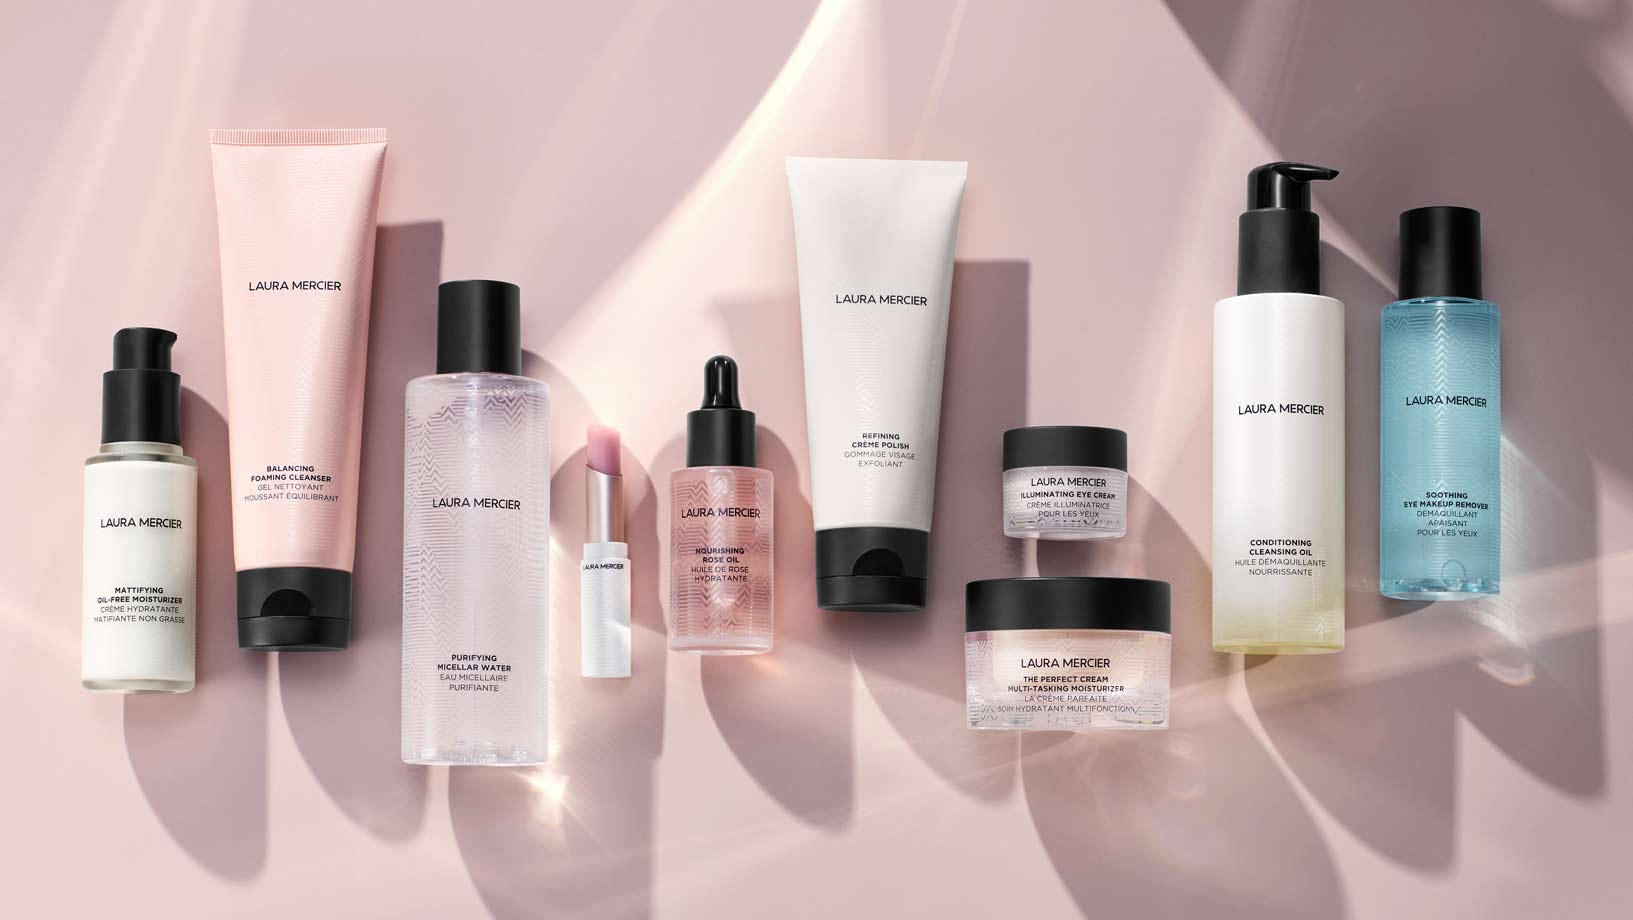 Laura Mercier products on pink background